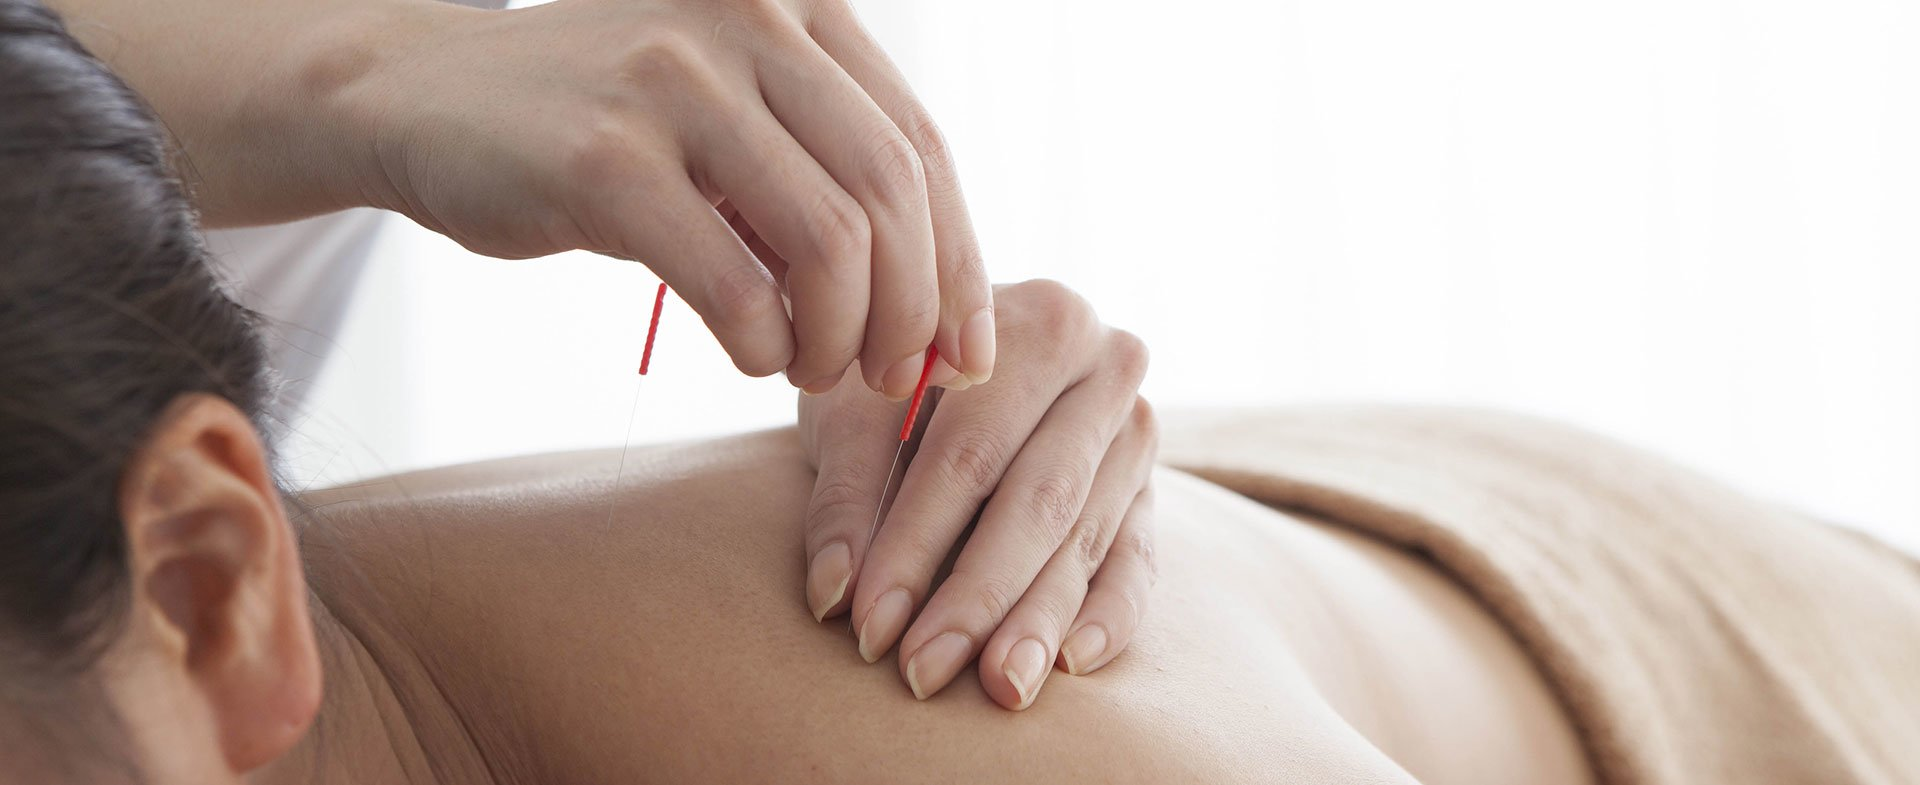 Acupuncture treatment winnipeg